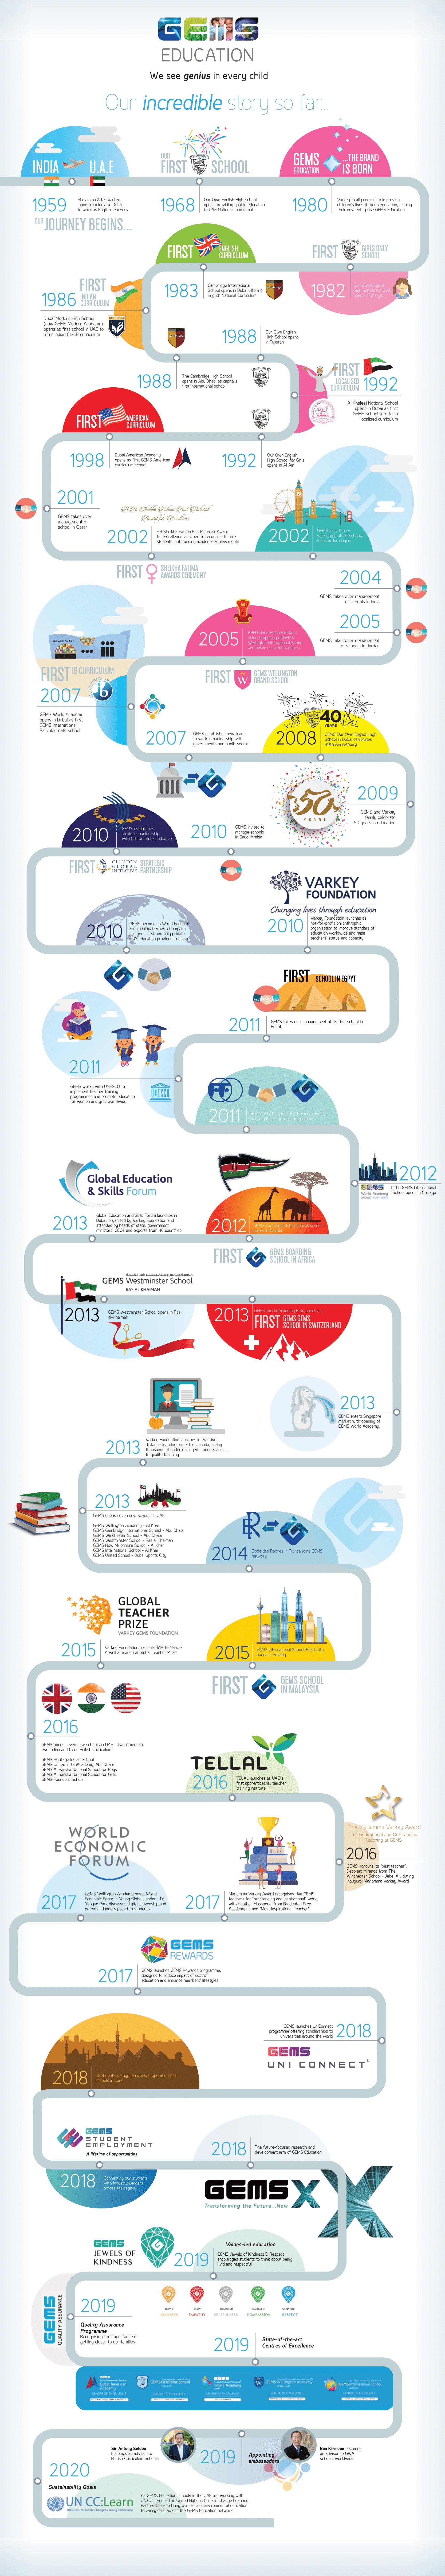 GEMS Education - Our heritage - Timeline